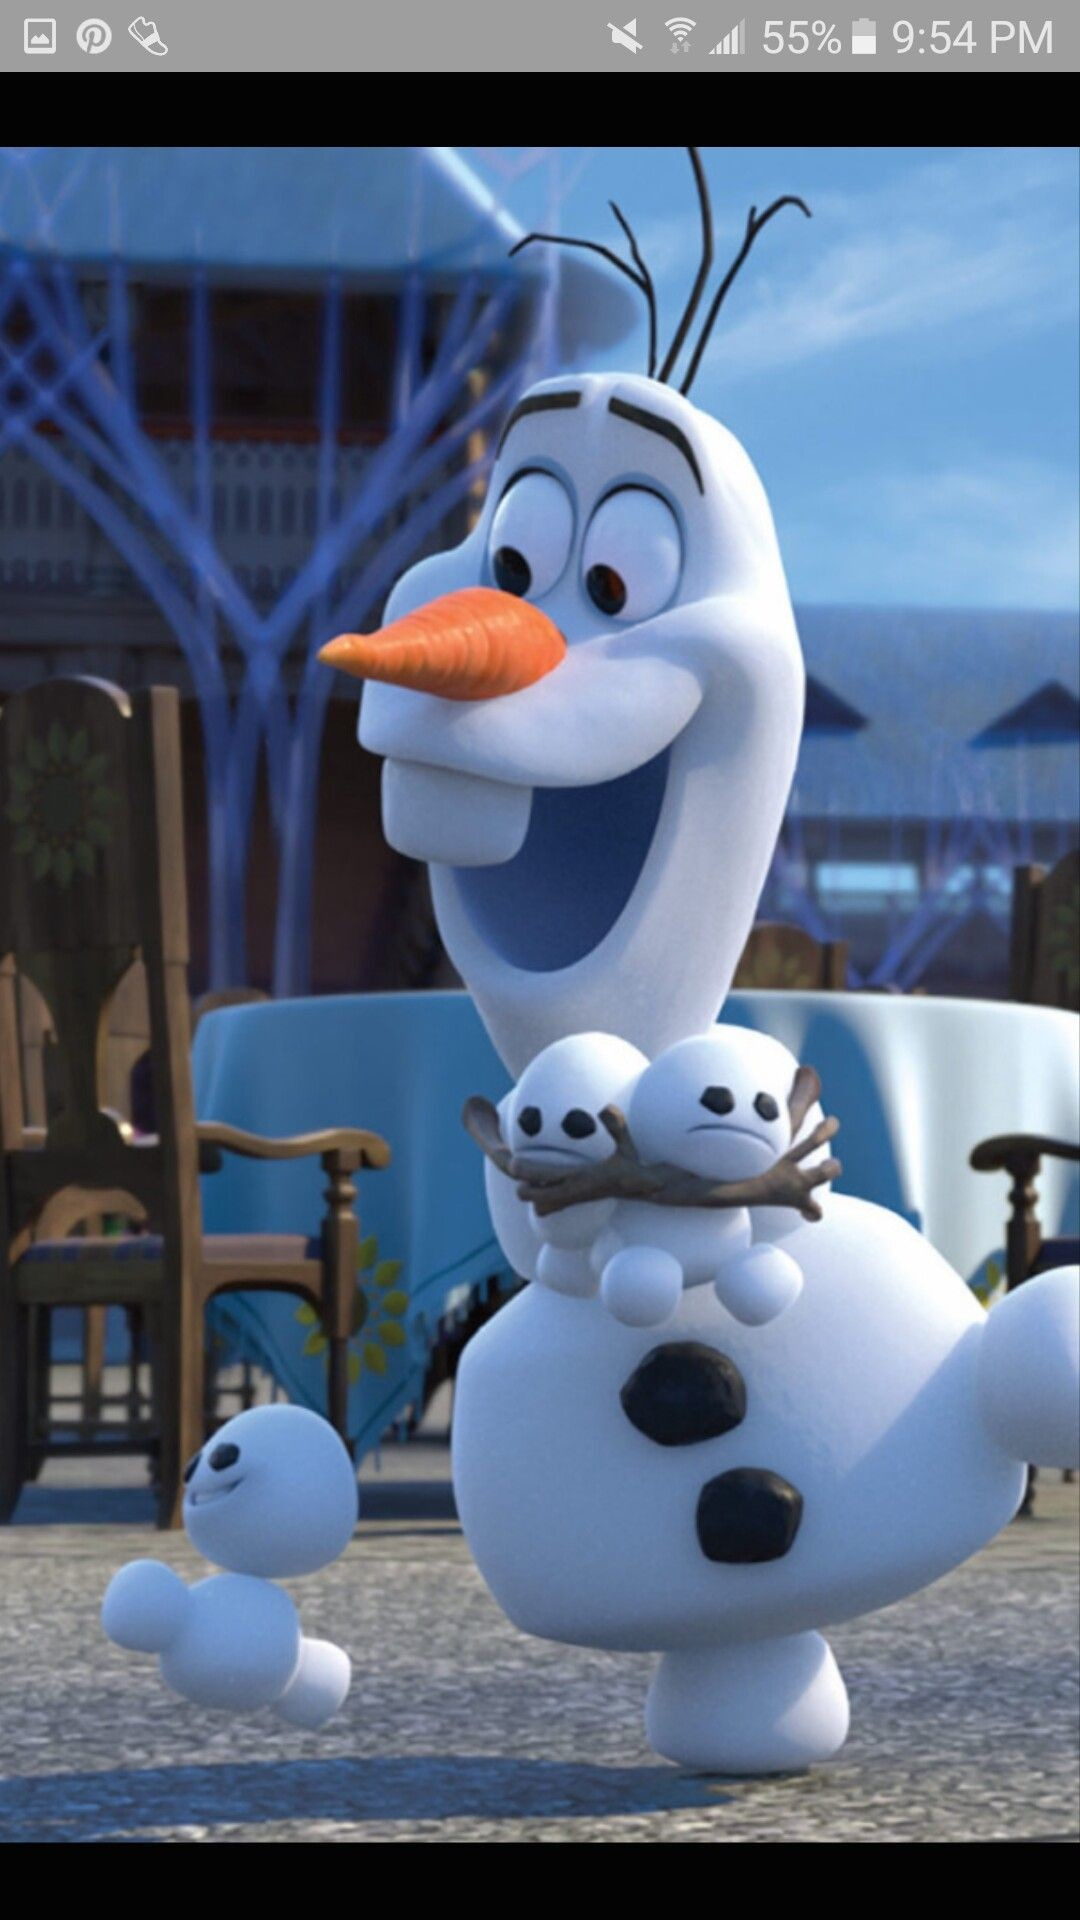 Olaf From Frozen Wallpaper 70 Images